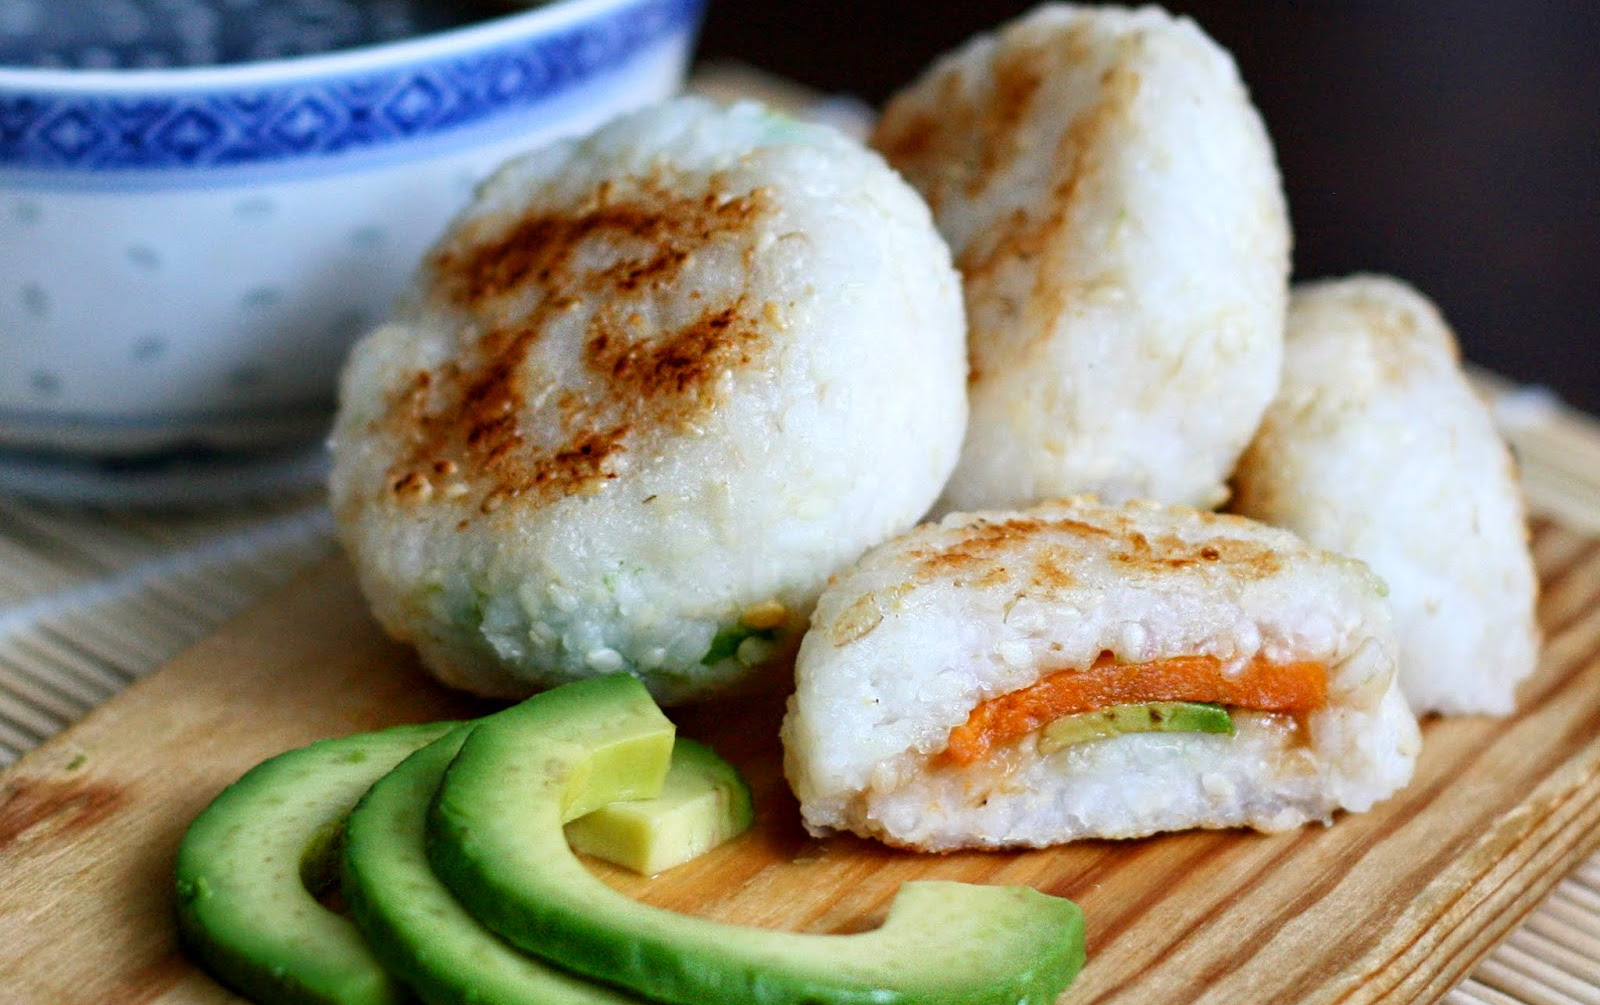 Yaki Onigiri With Sweet Potato and Avocado Filling [Vegan, Gluten-Free]